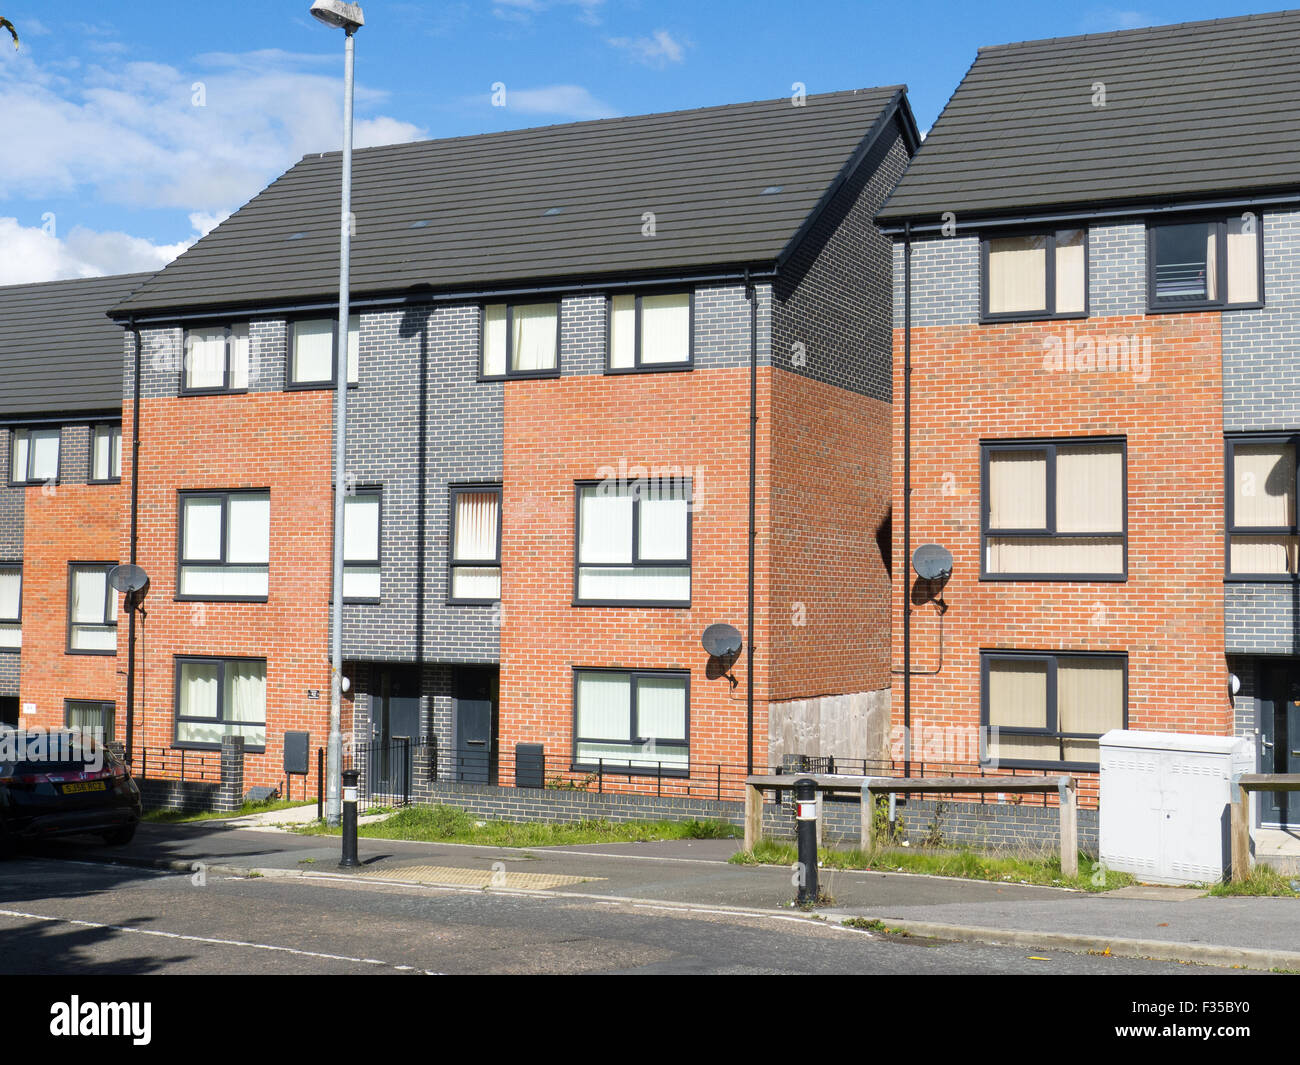 Newly built local authority housing - Stock Image